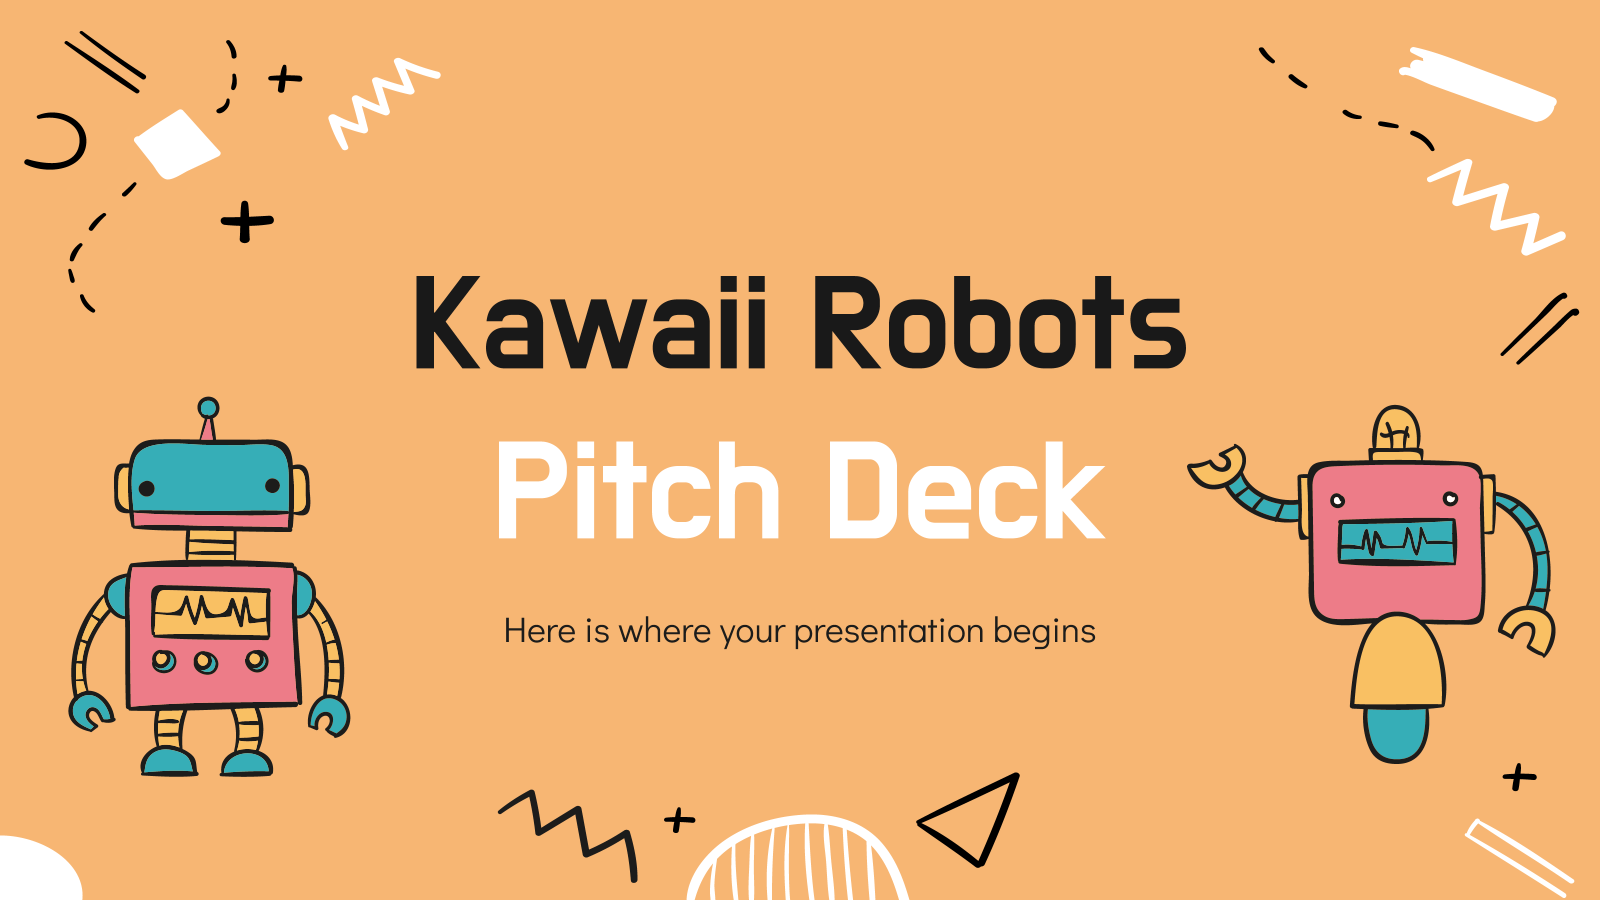 Kawaii Robots Pitch Deck presentation template